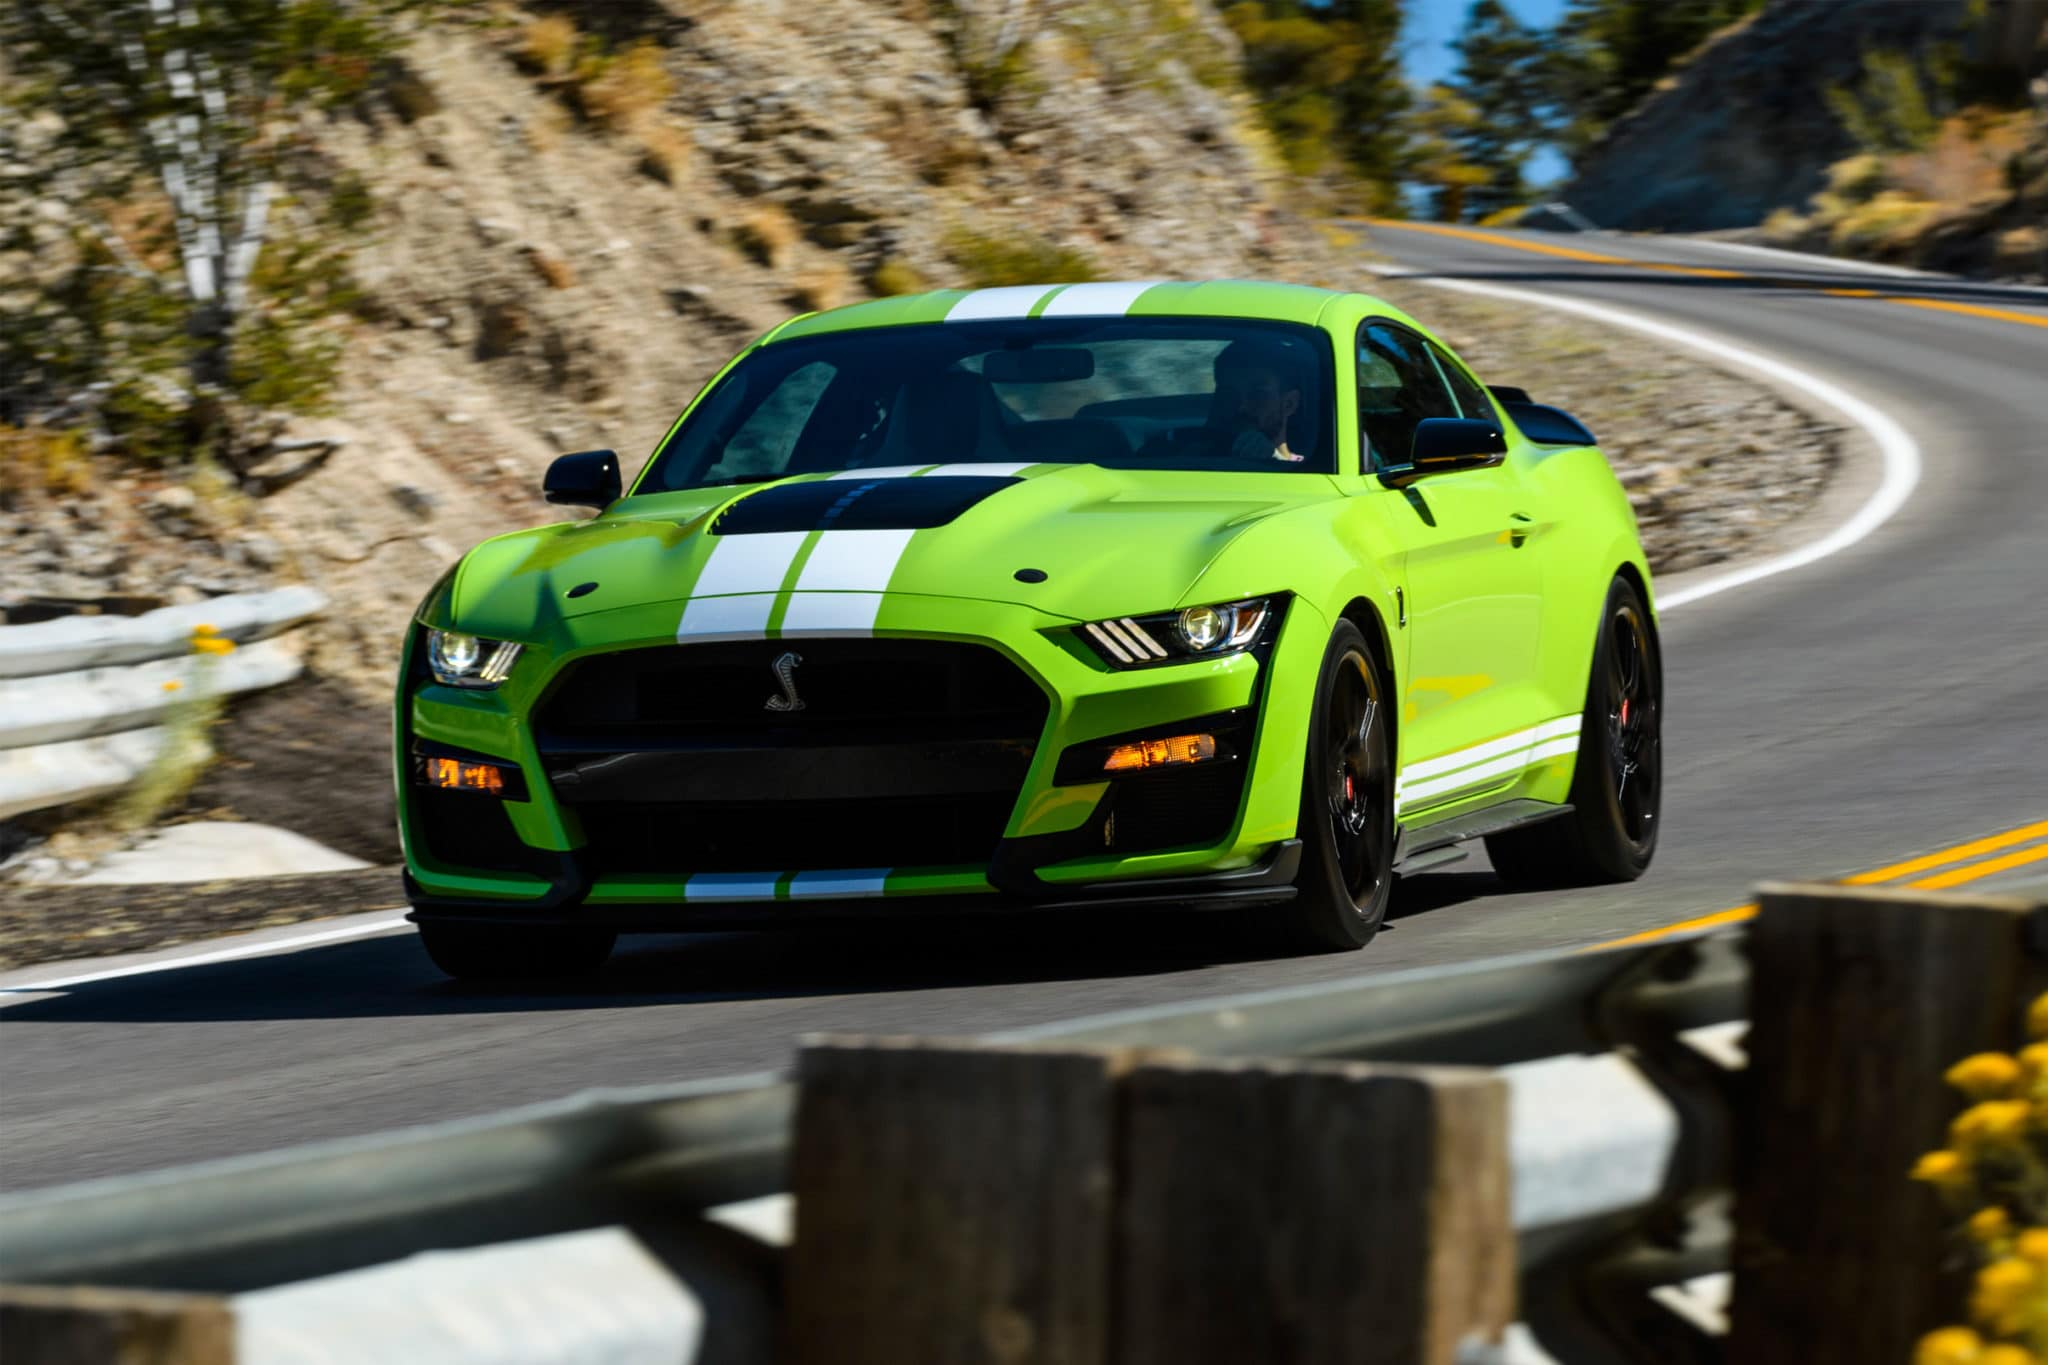 2019 Ford Mustang Shelby Gt500 Press Event Las Vegas